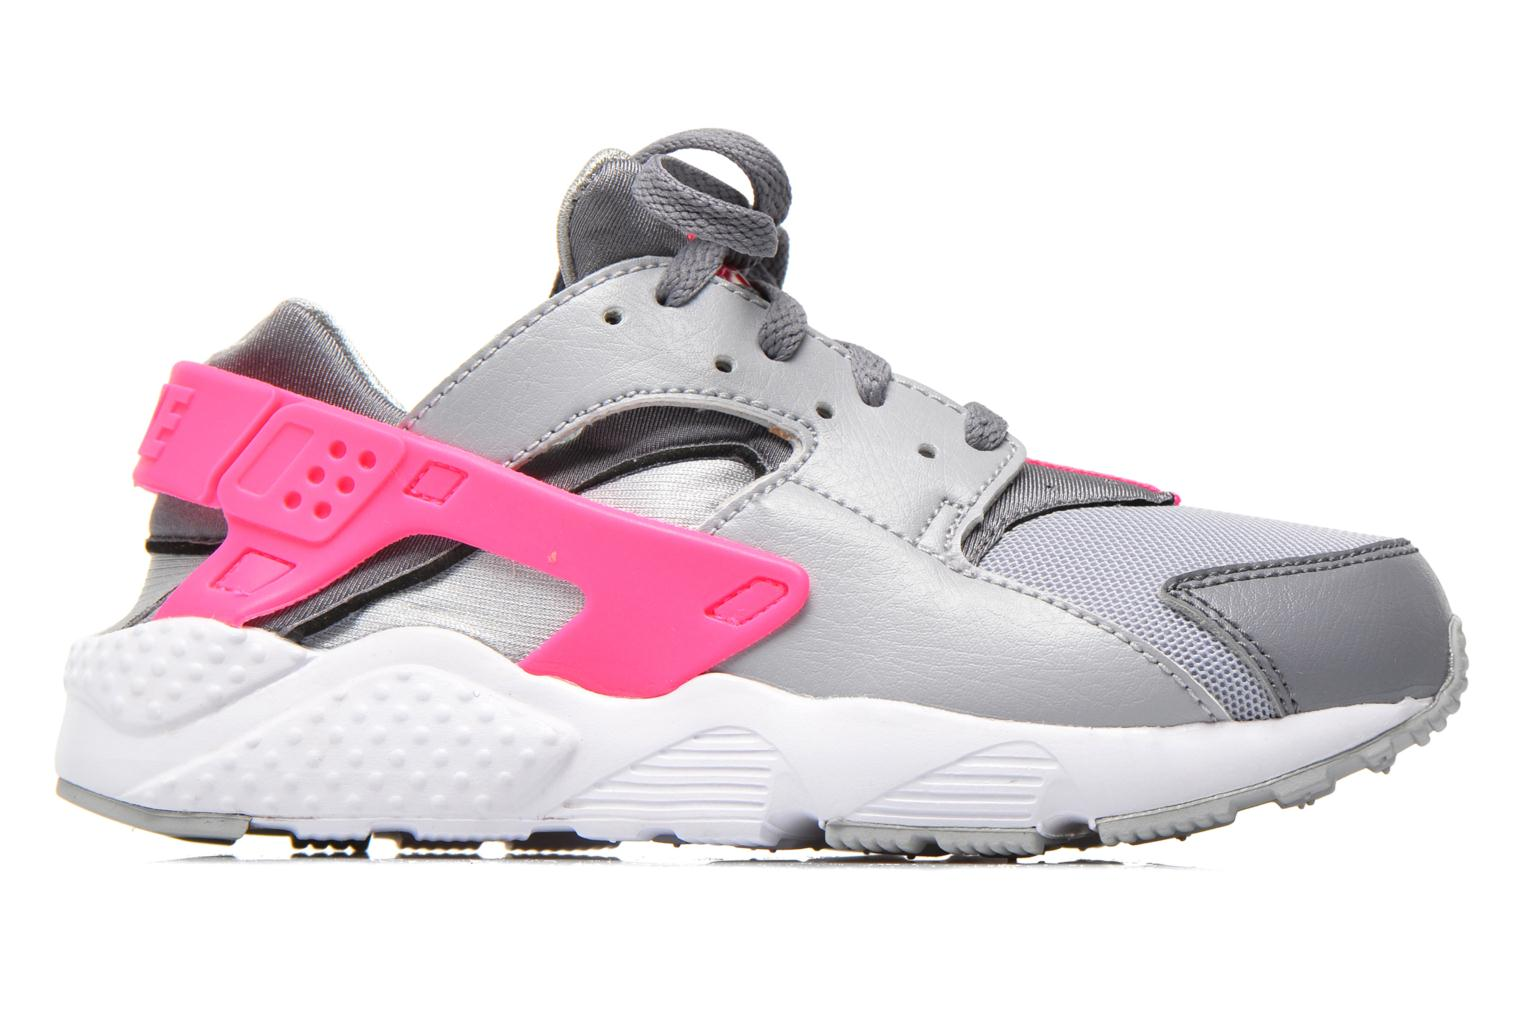 Nike Huarache Run (Ps) Wlf Grey/White-Cl Gry-Hypr Pnk